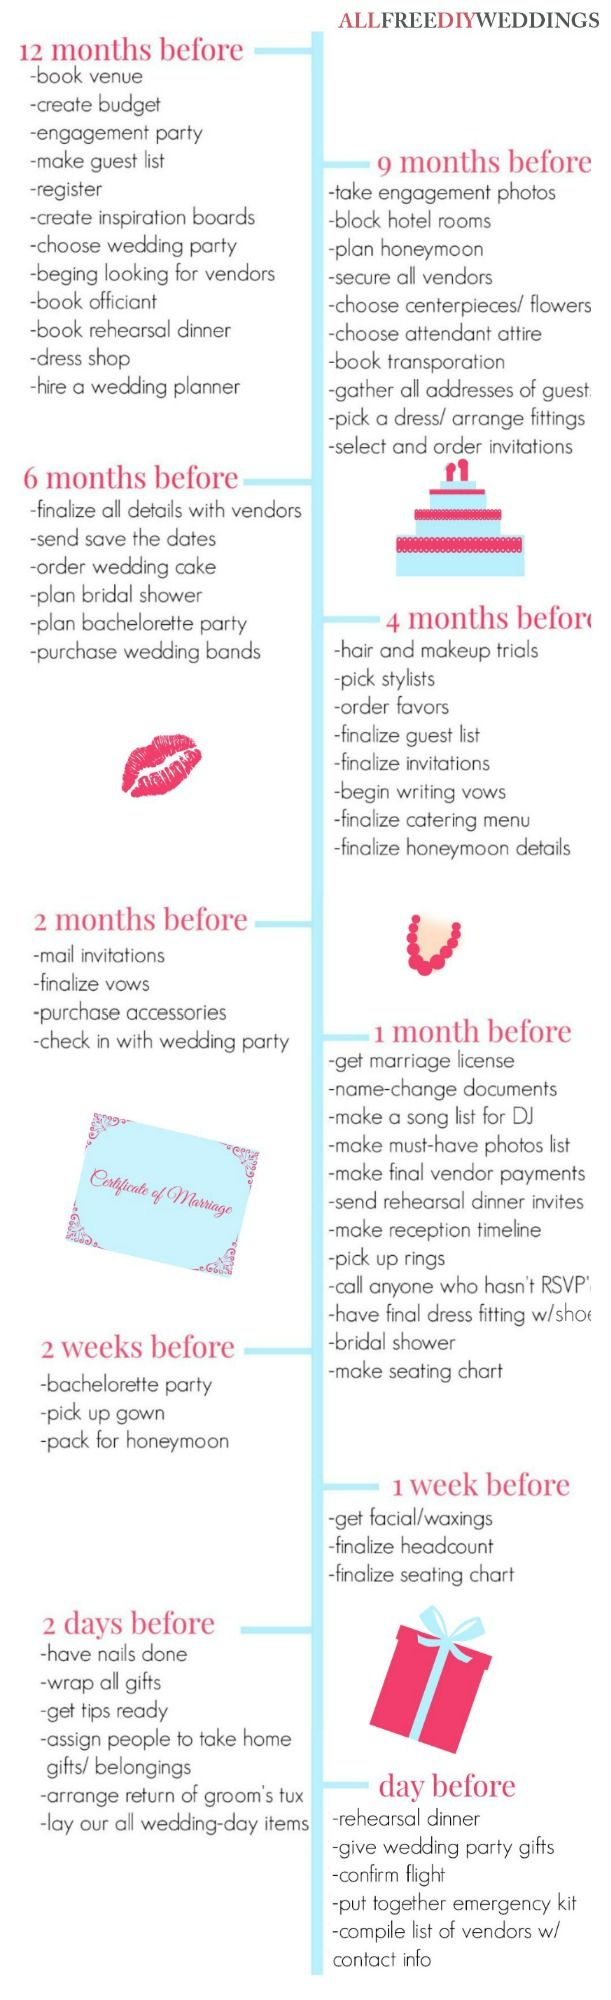 This Wedding Planning Timeline Is Incredible